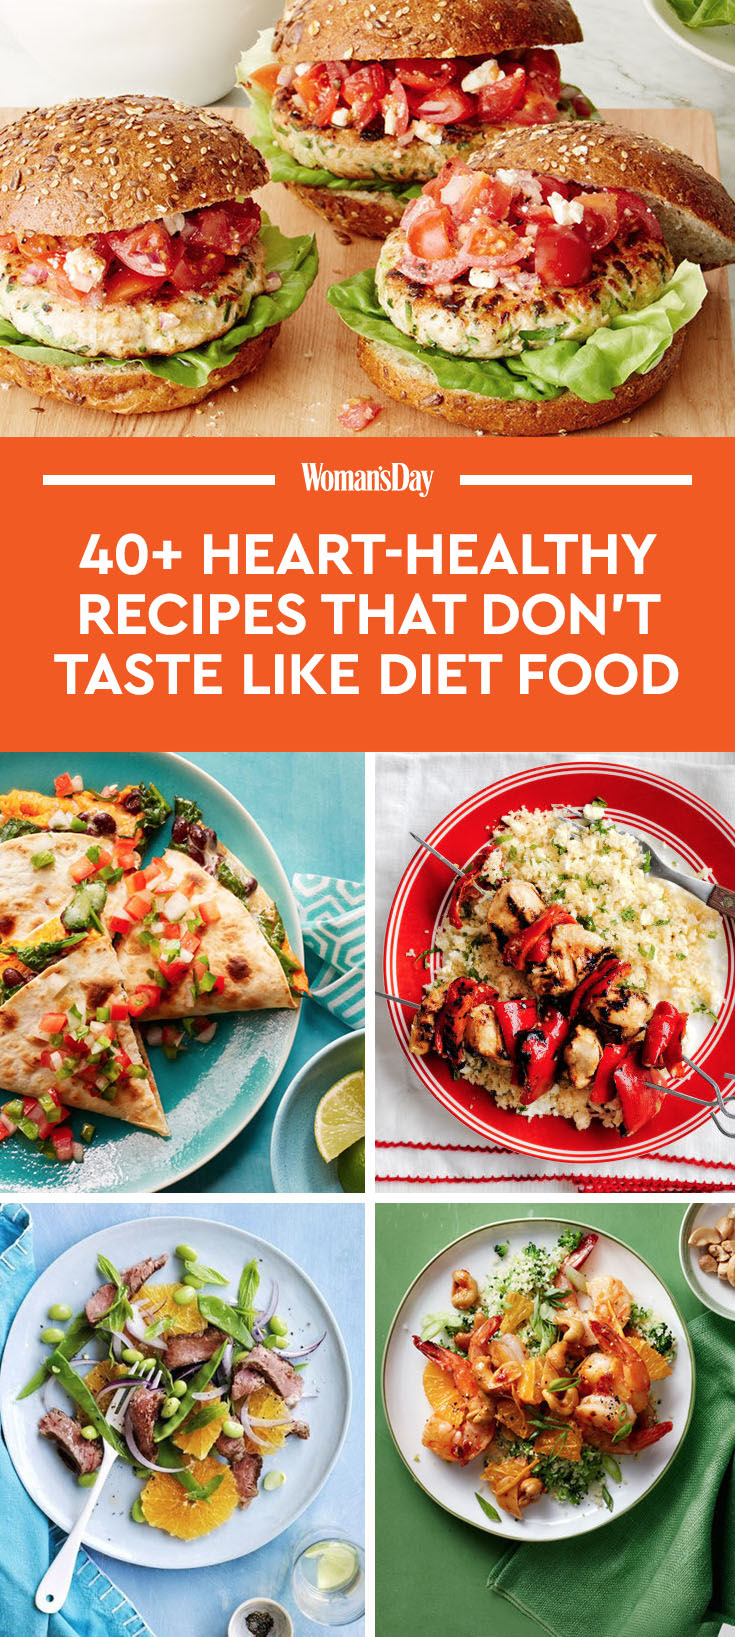 55 Heart-Healthy Dinner Recipes That Don't Taste Like Diet ...